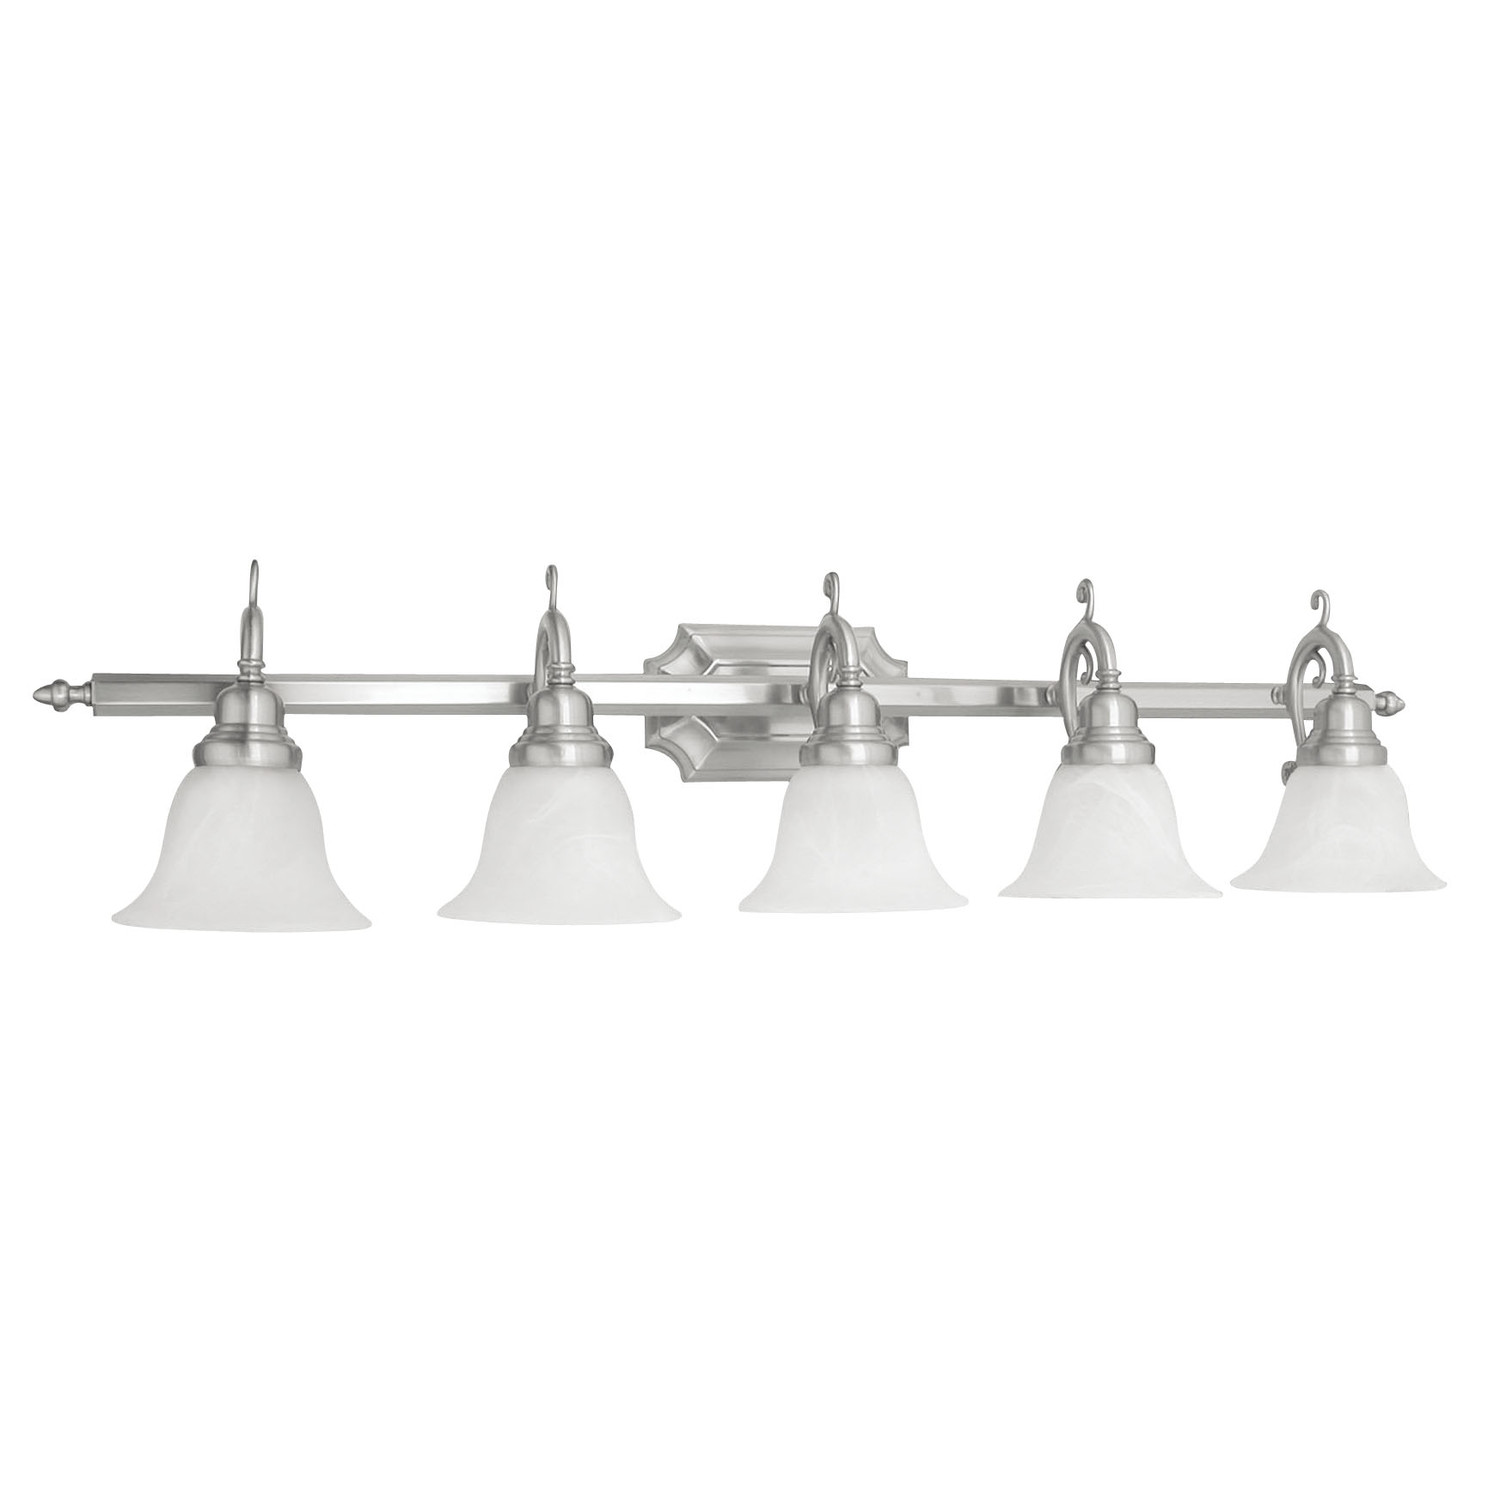 awesome Livex Lighting French Regency 5 Light Bath Vanity Light for bathroom lighting ideas